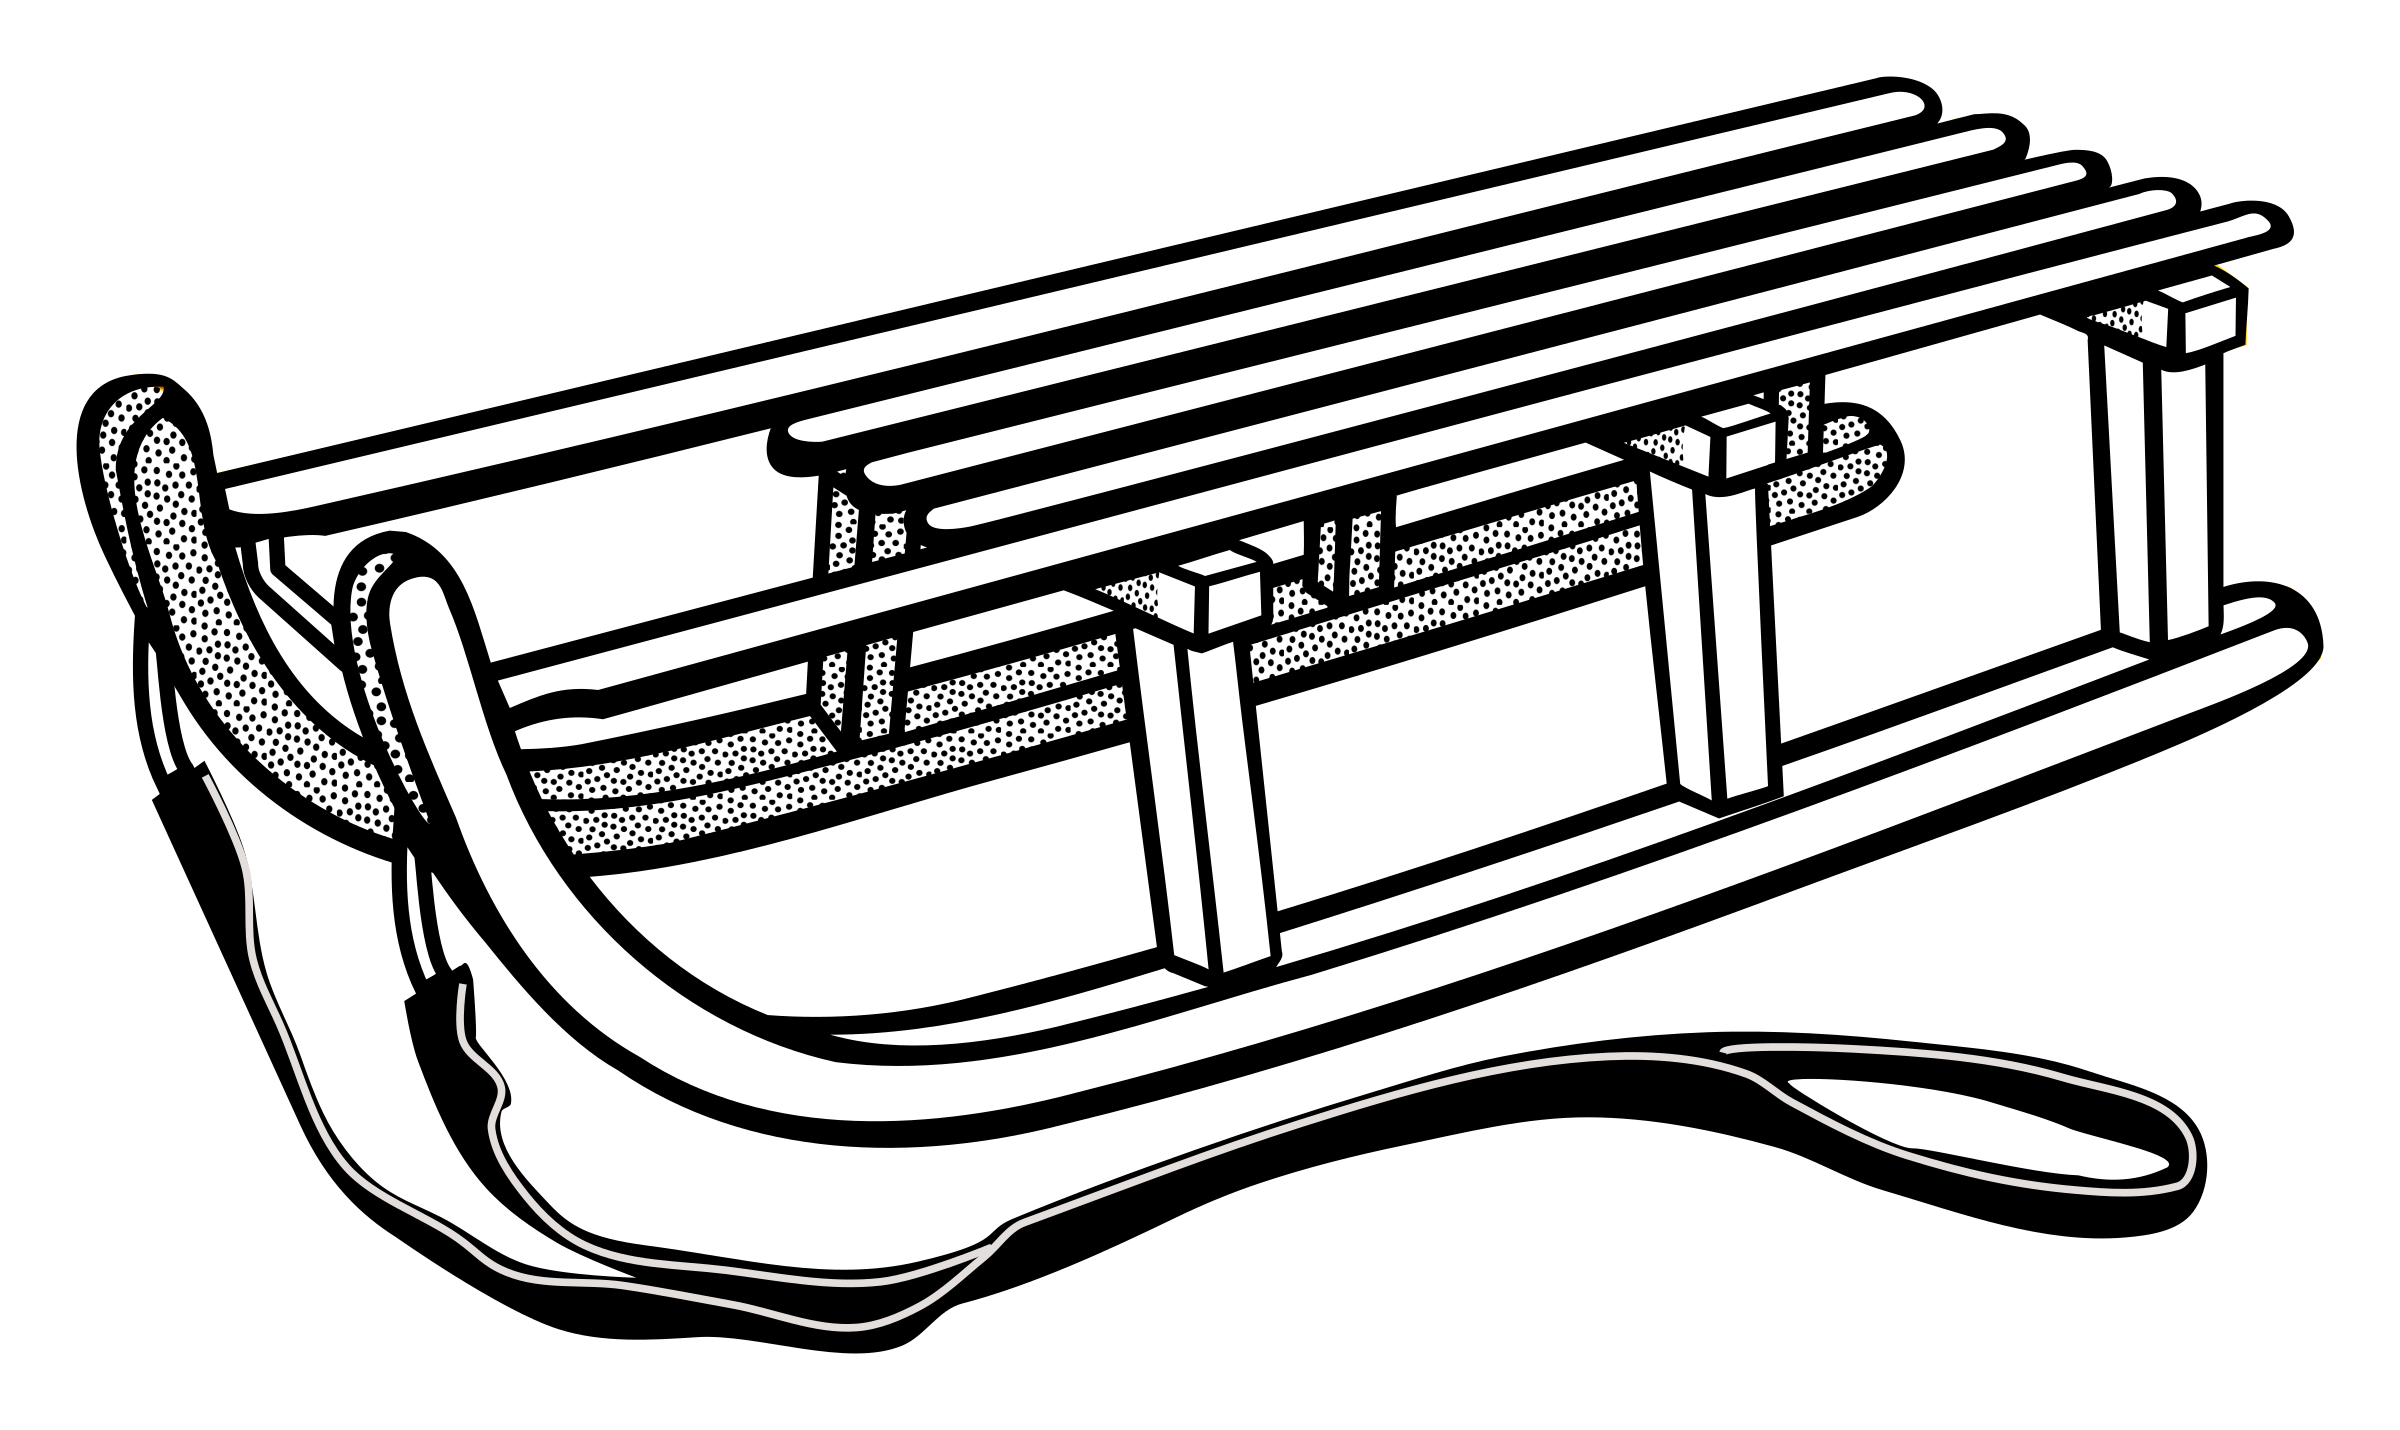 Sled clipart black and white clipart images gallery for free.